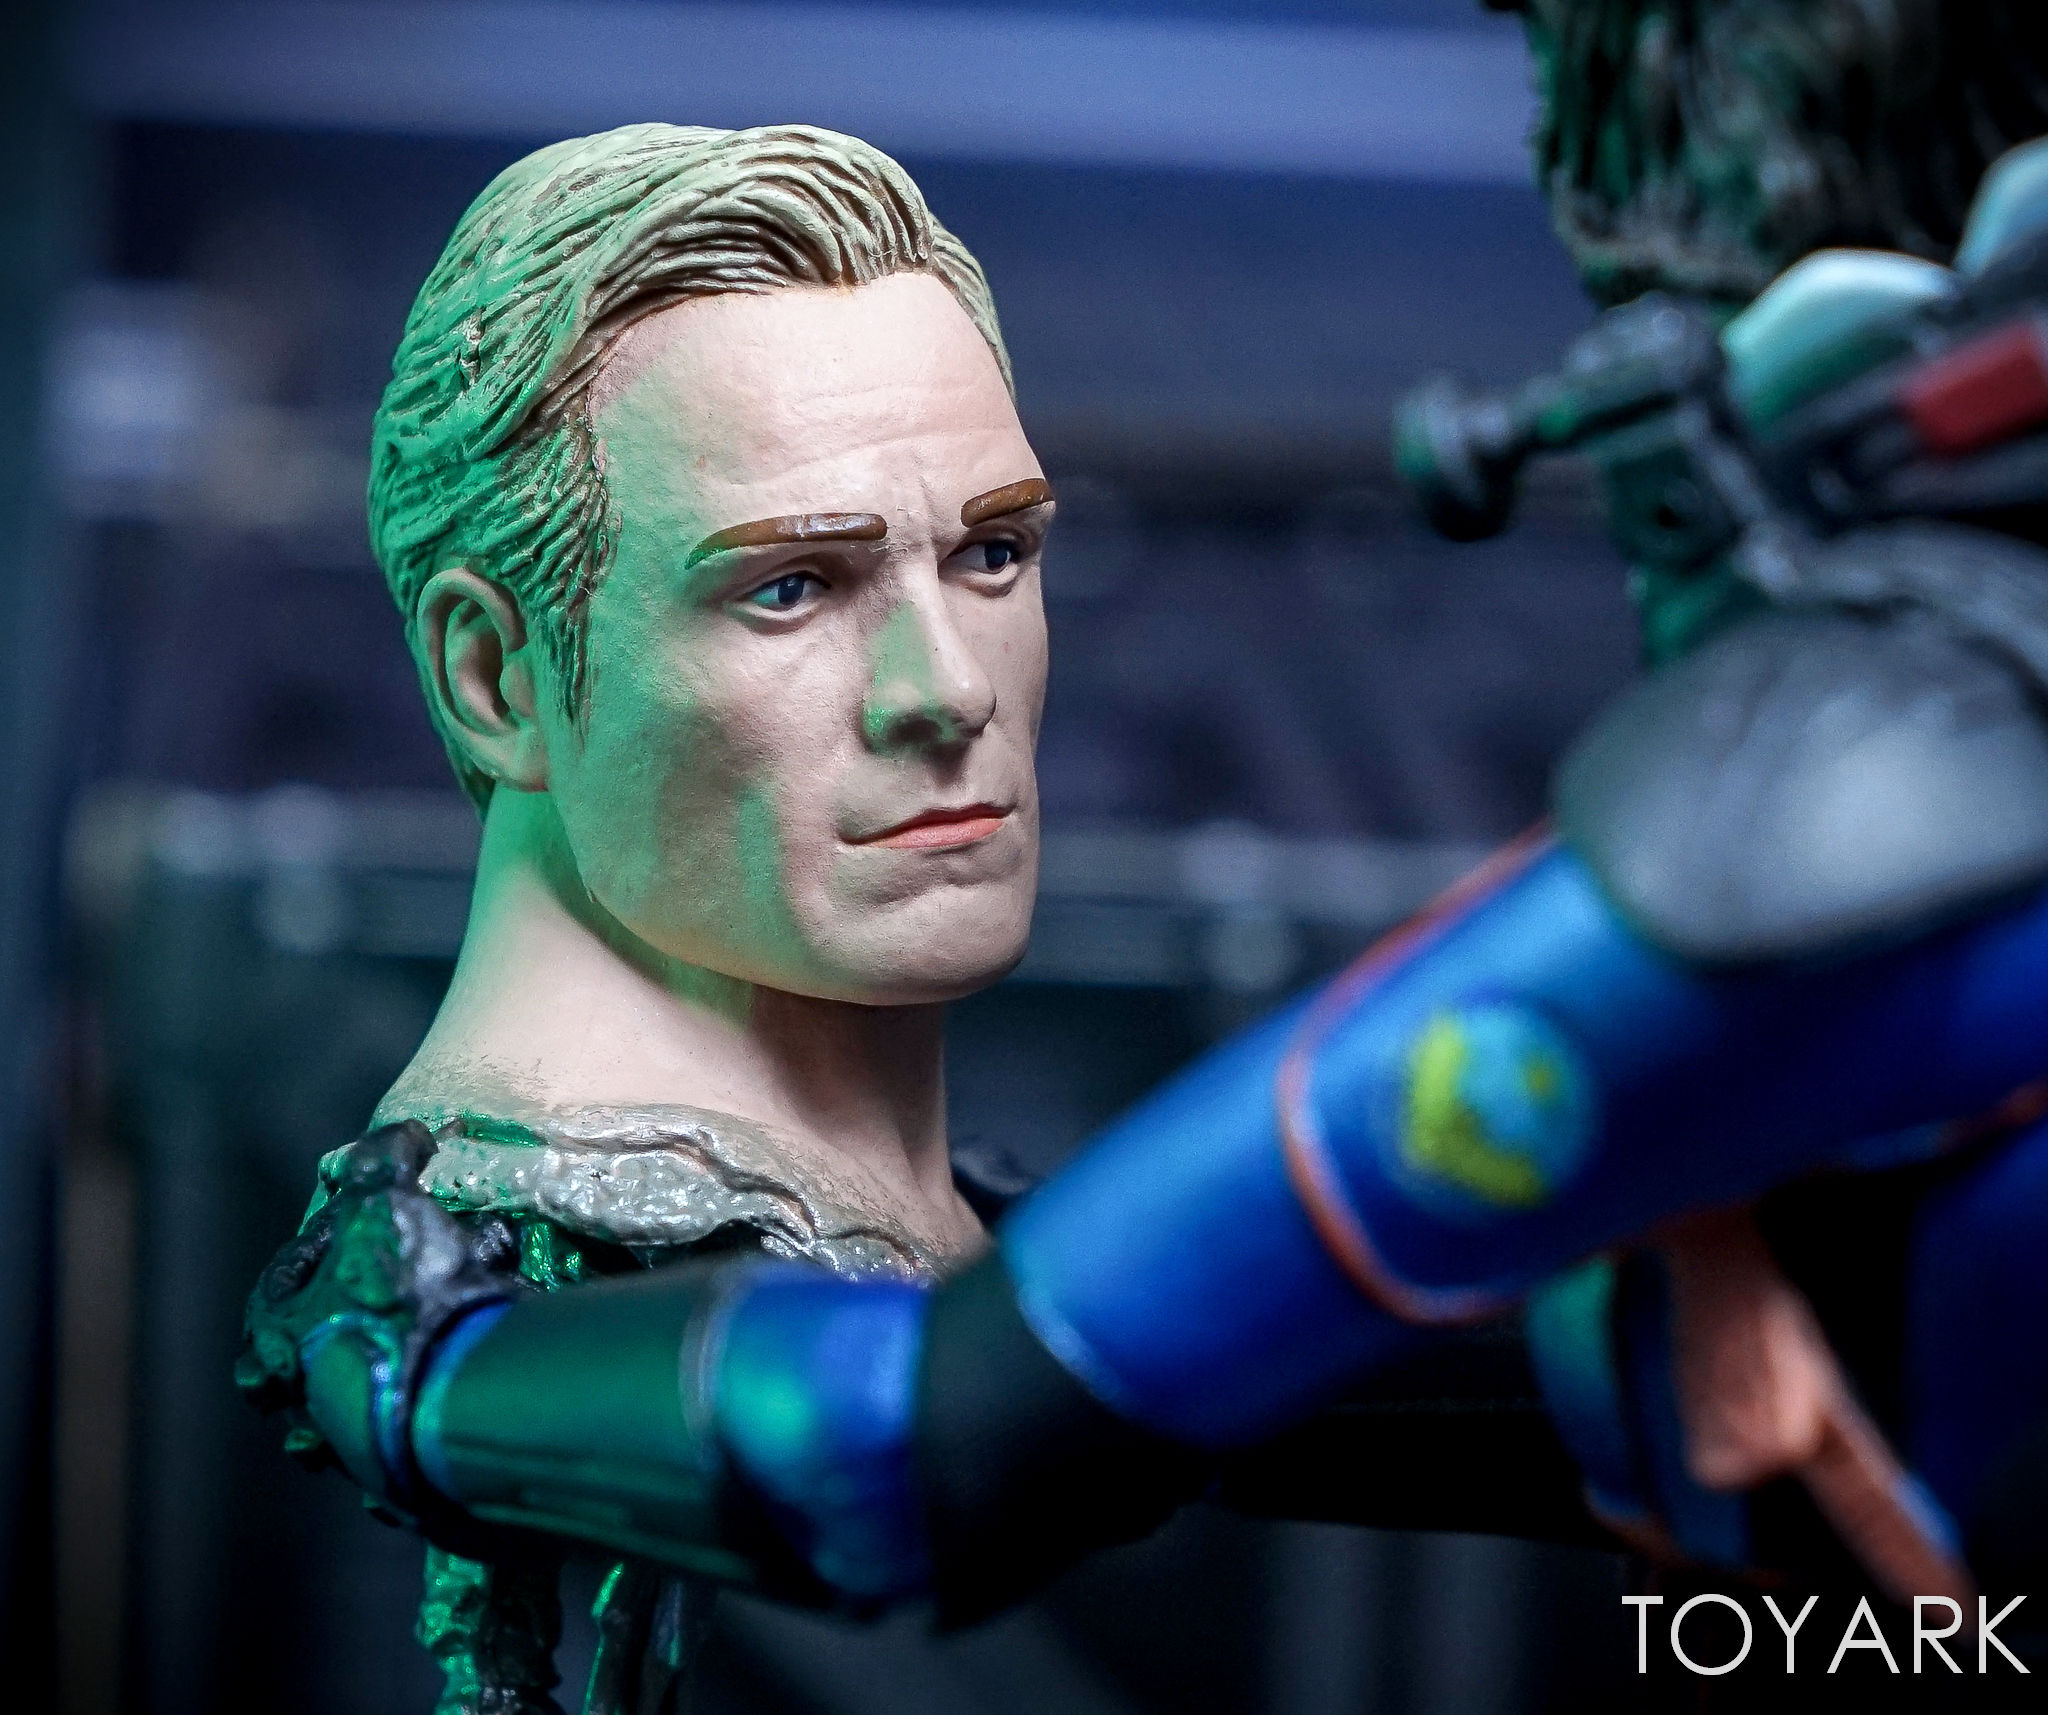 http://news.toyark.com/wp-content/uploads/sites/4/2017/06/NECA-Prometheus-Lost-Wave-059.jpg